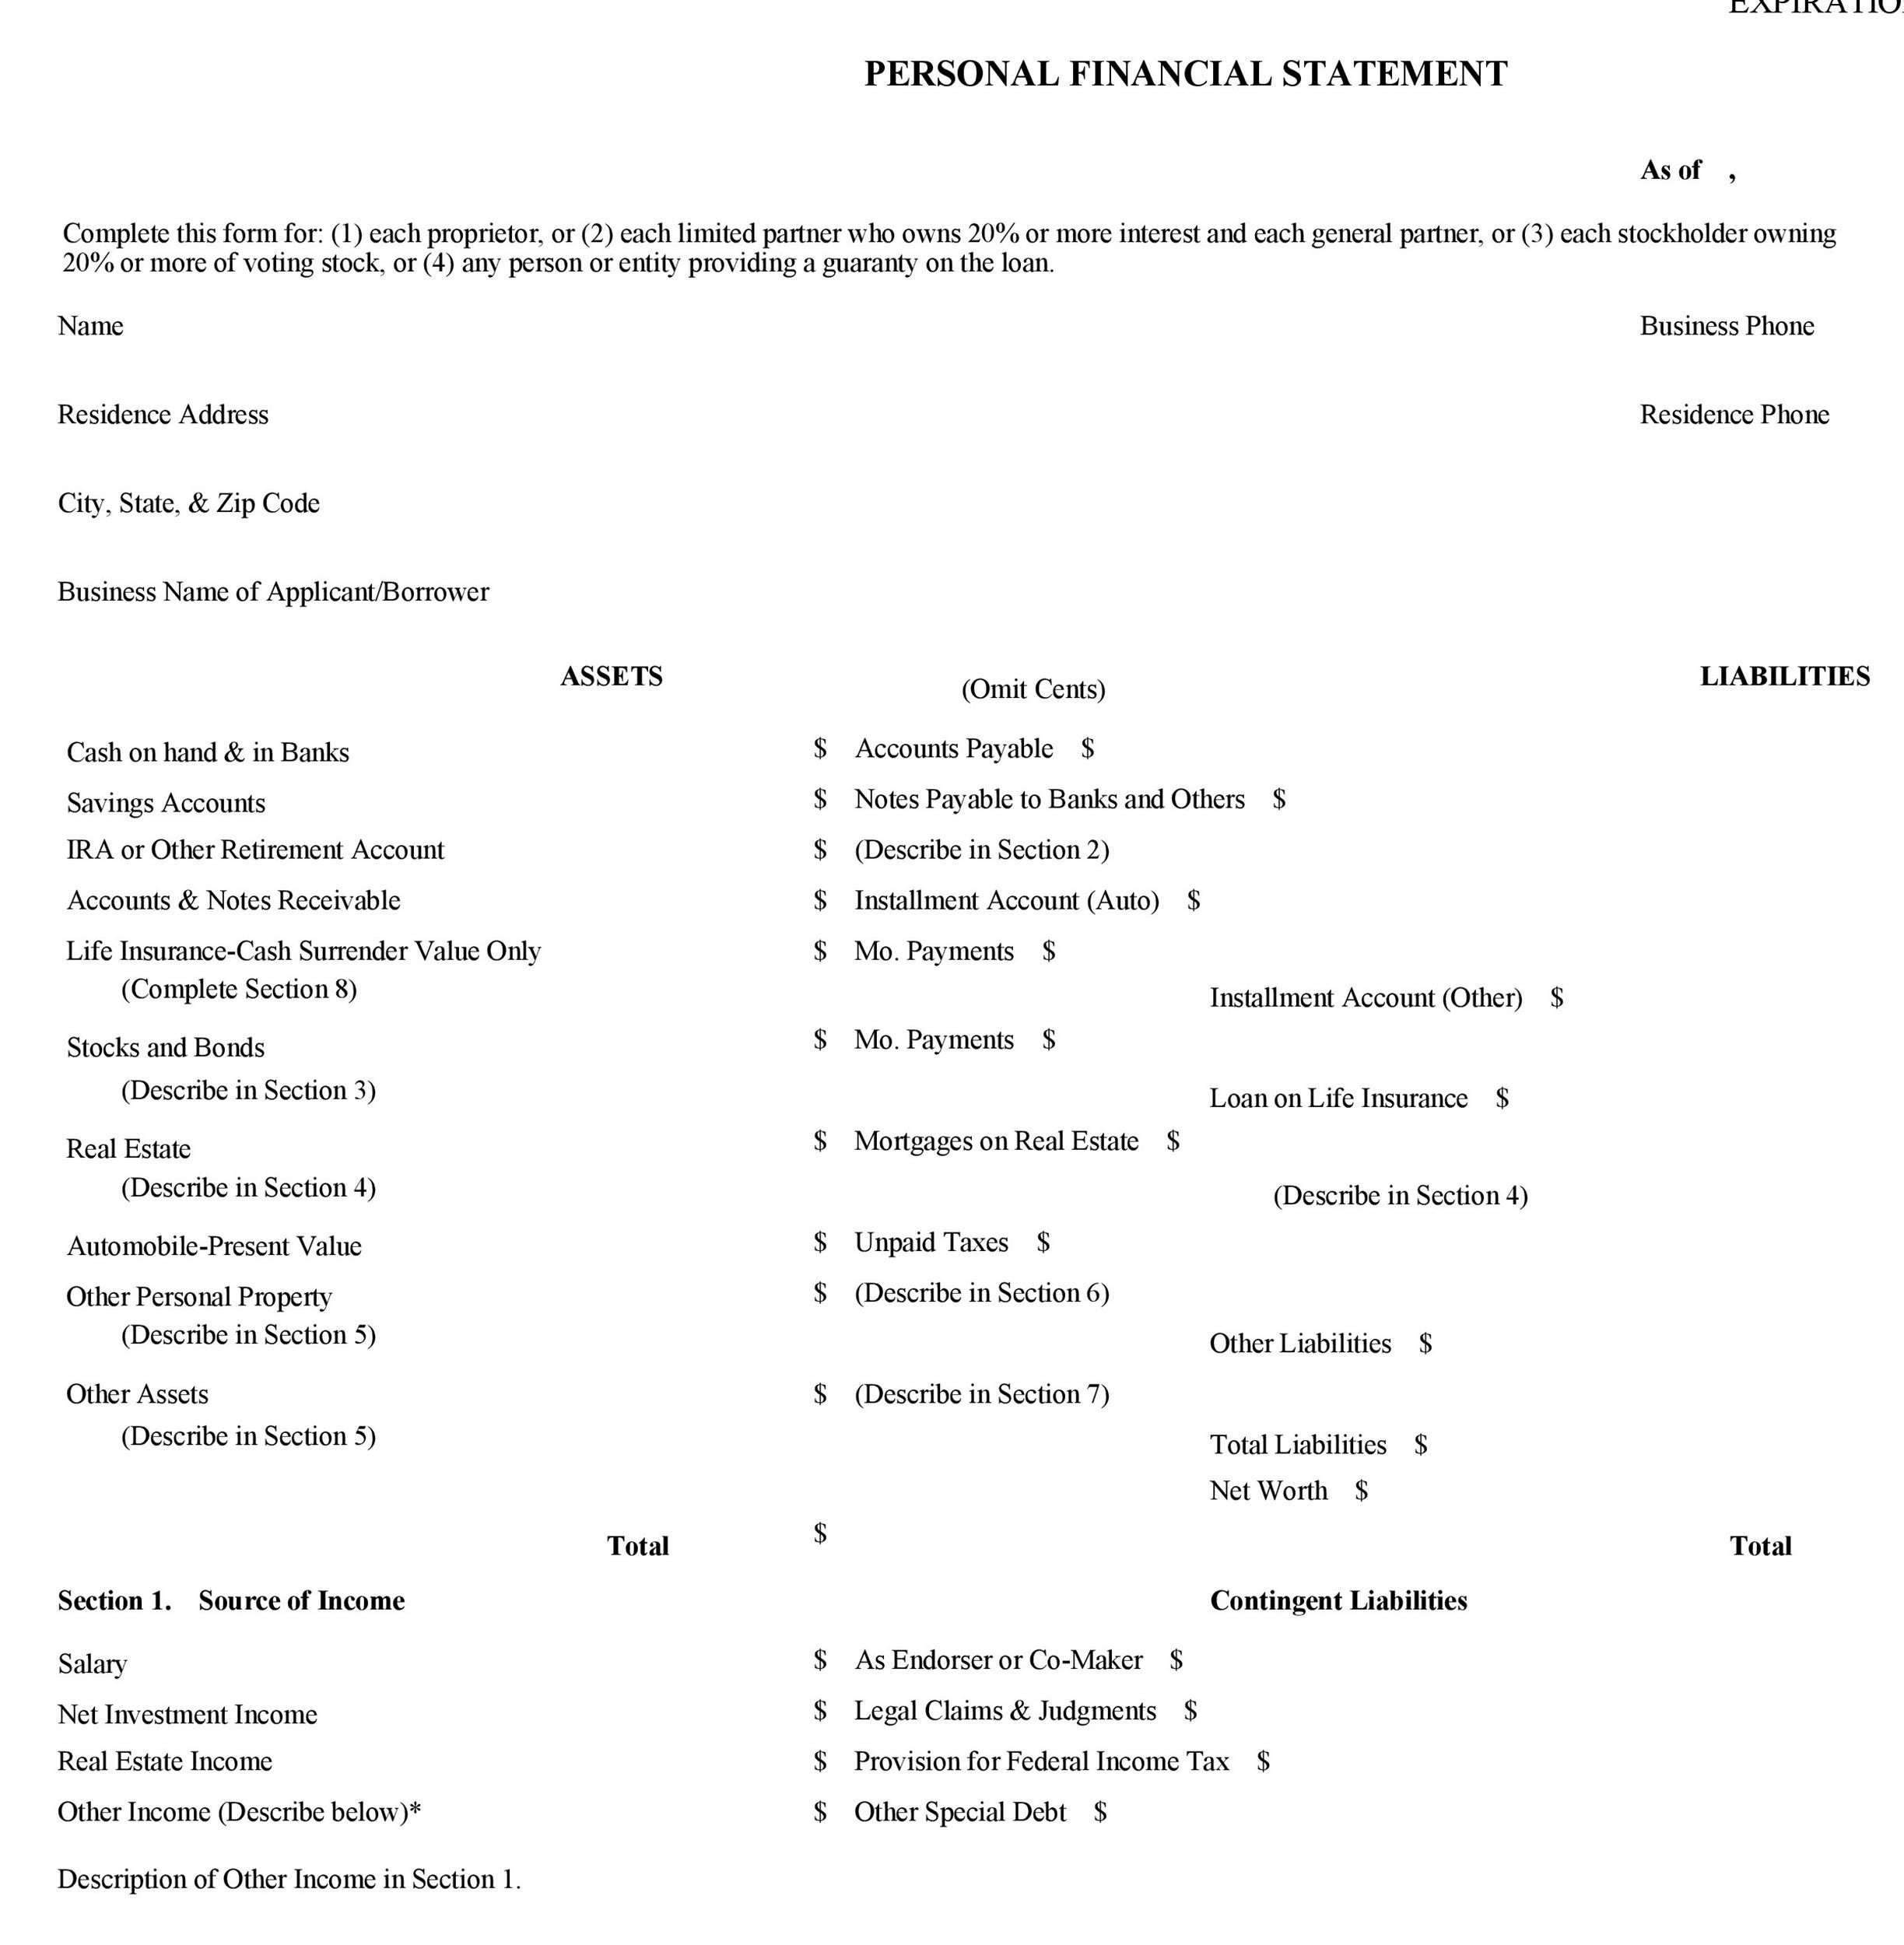 Personal Financial Statemetn  Template